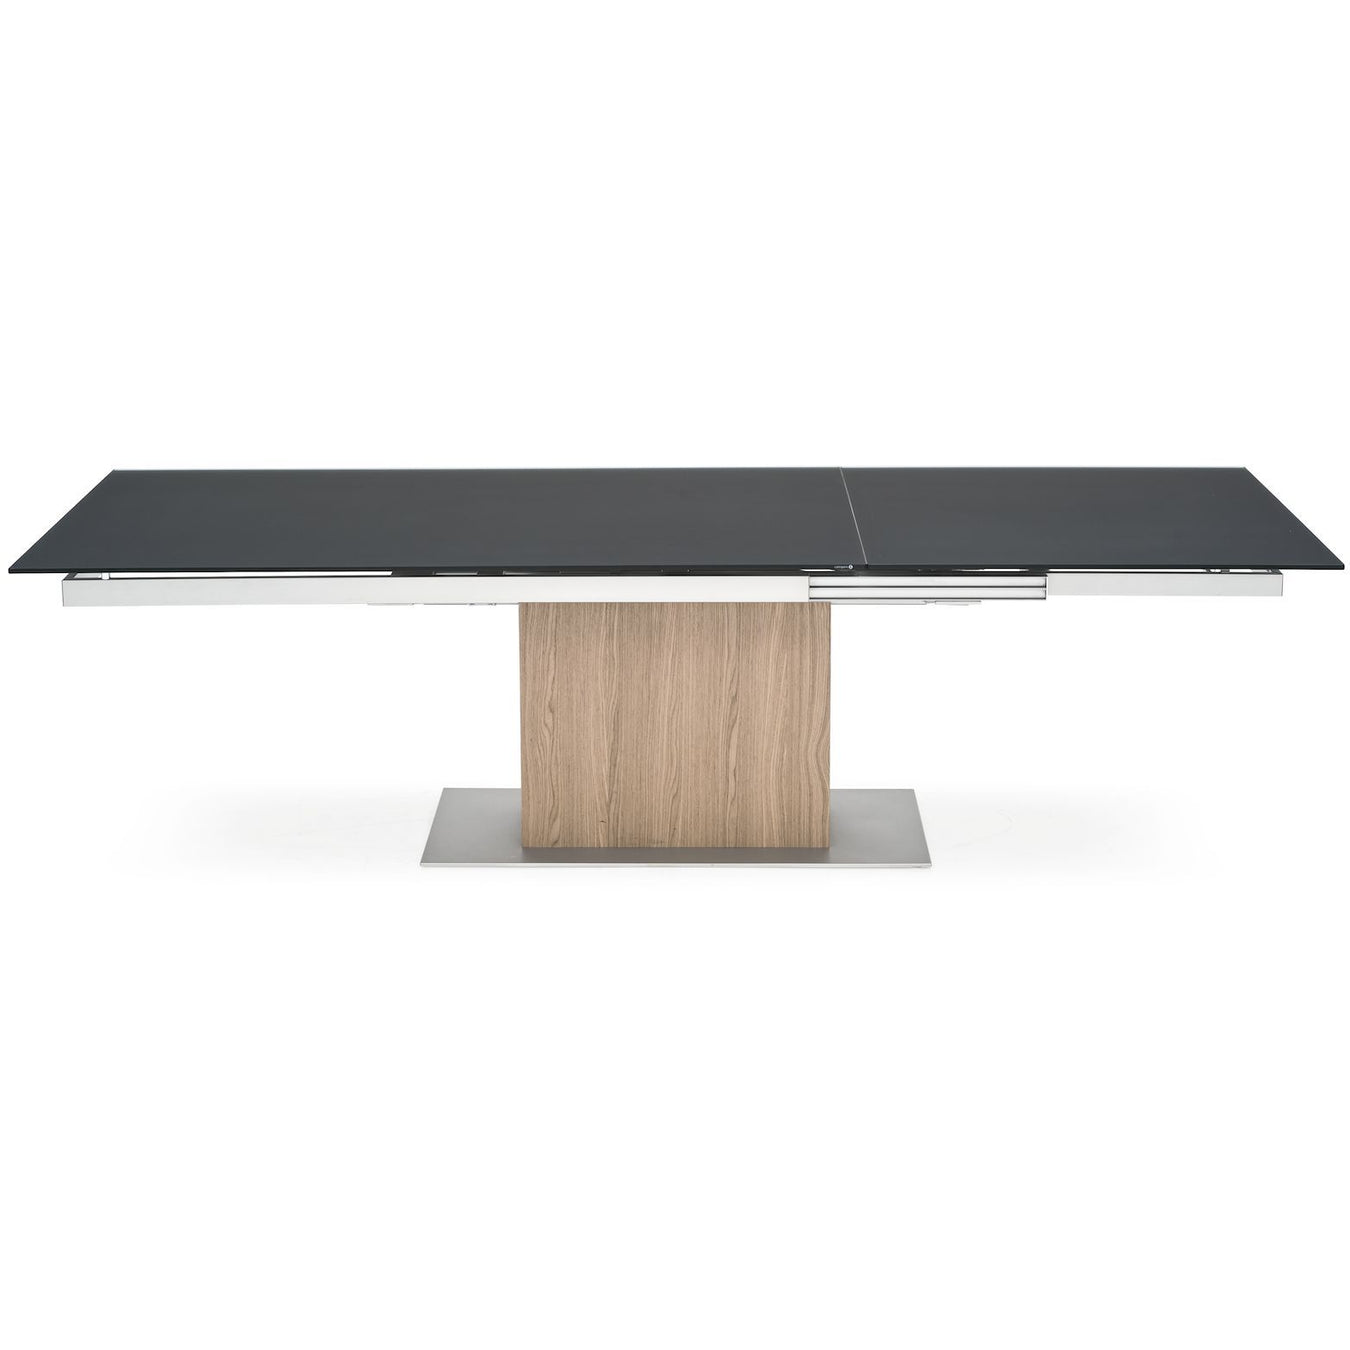 Sincro CB/4087 Table